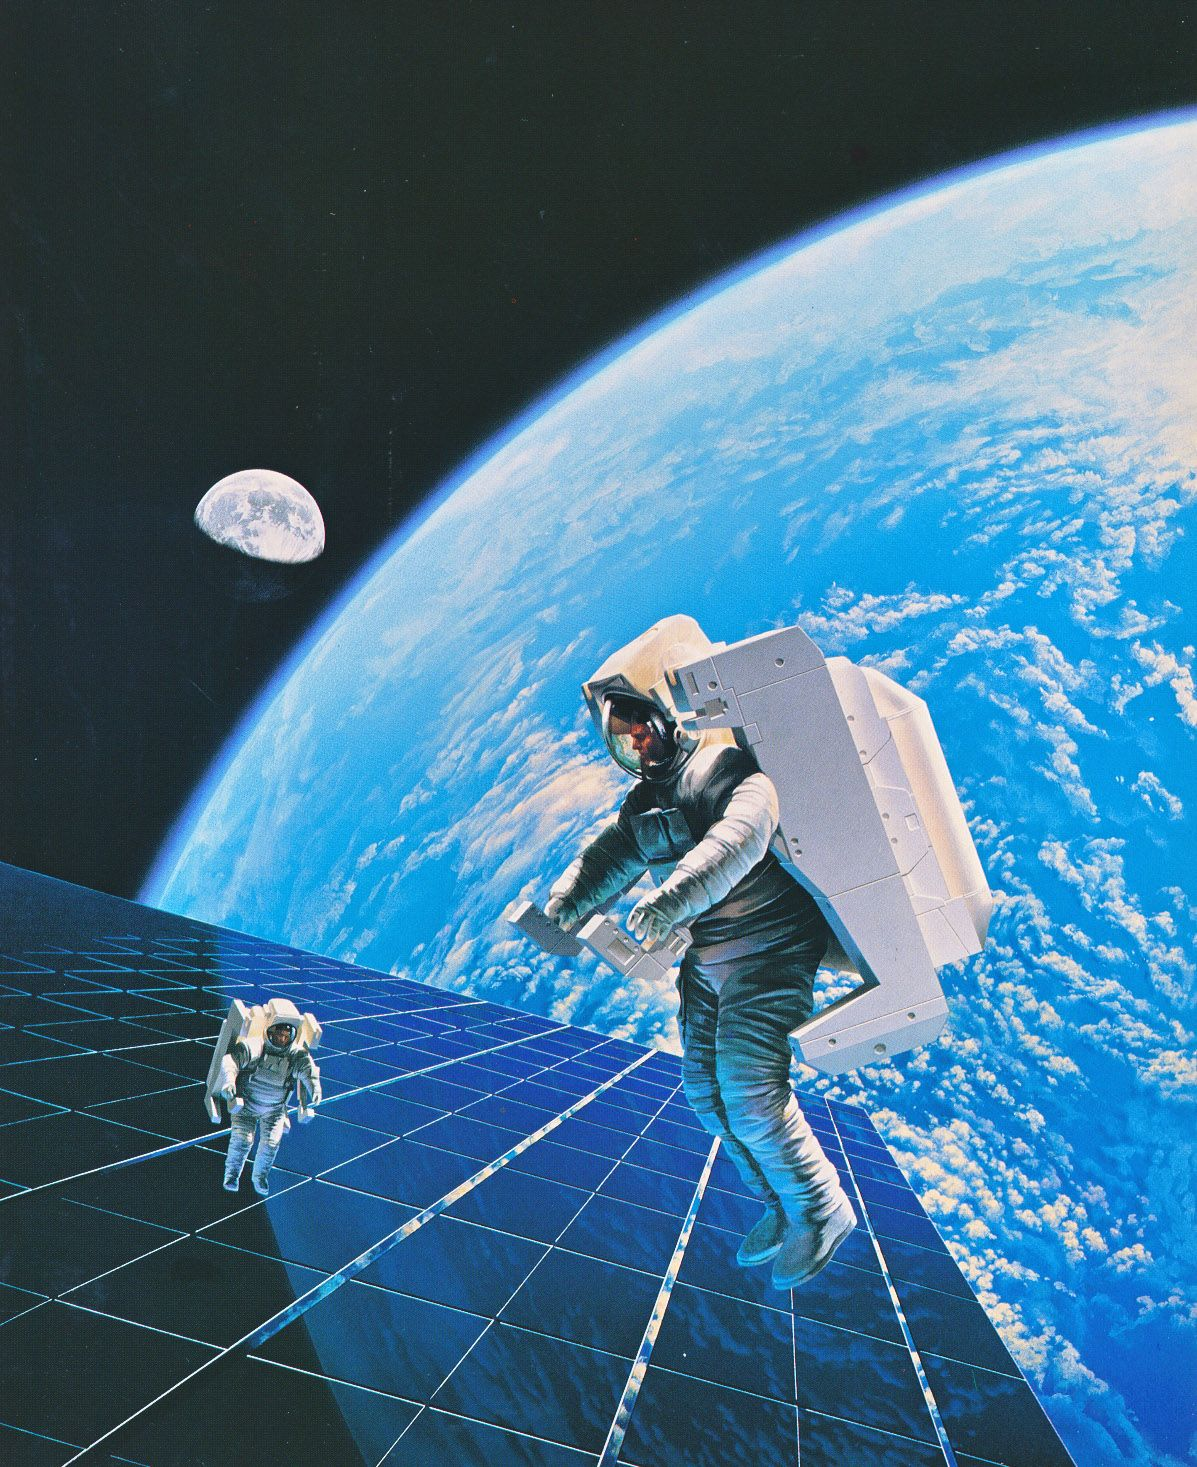 Painting by Pamela Lee 'Astronaut with MMU Above Solar